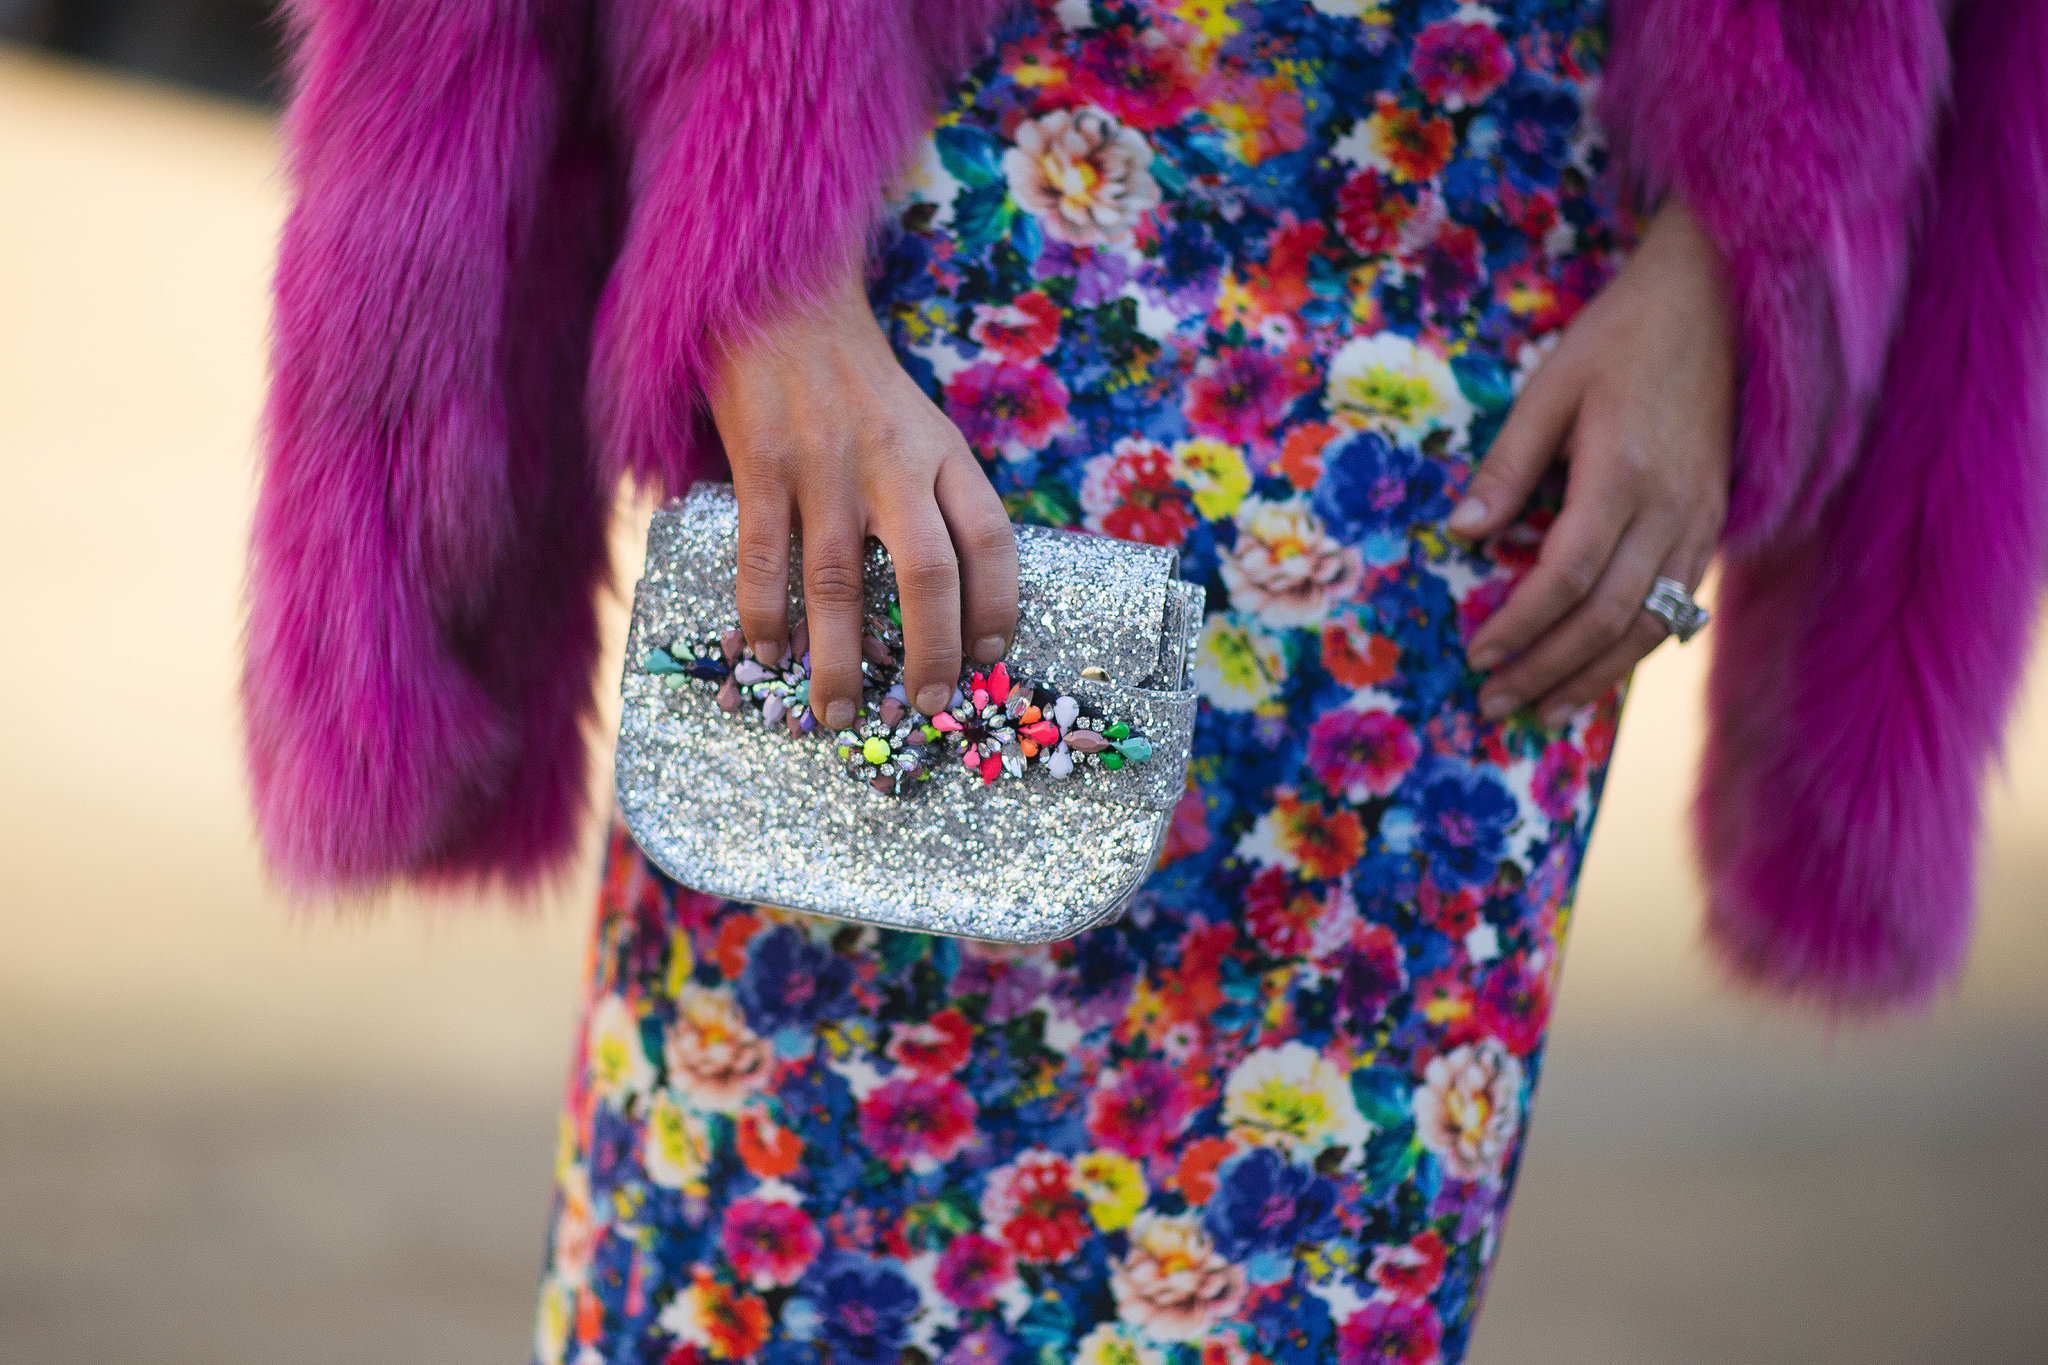 The multicolored embellishments on her clutch upped the ante on her rainbow-bright floral print.